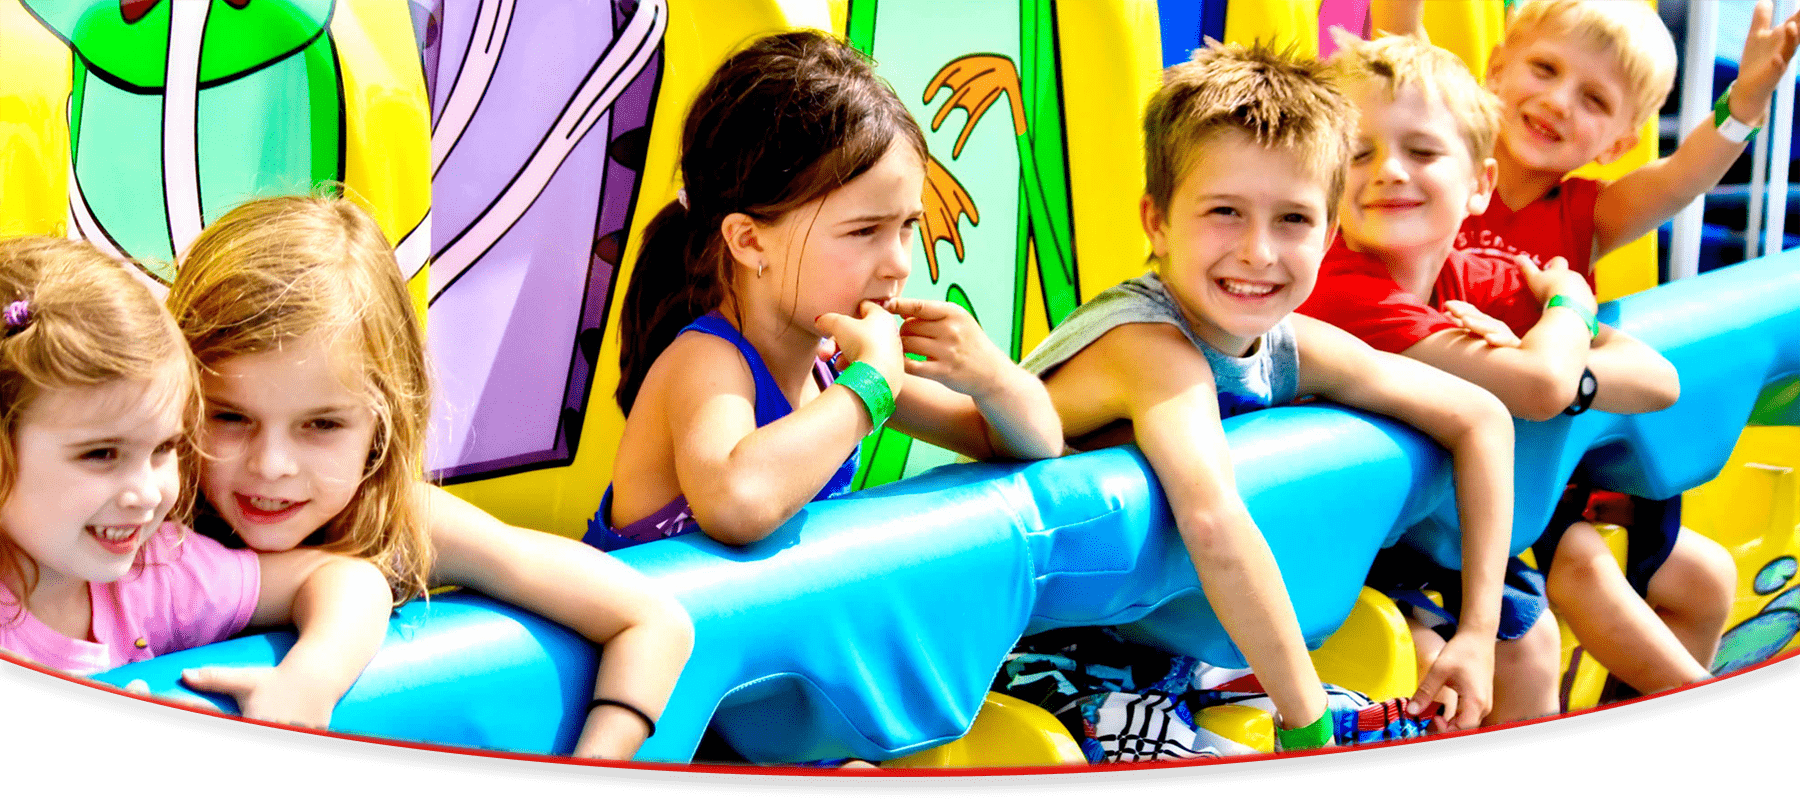 Home Page Slider | Frogger Group | Background | Palace Playland | Old Orchard Beach, ME